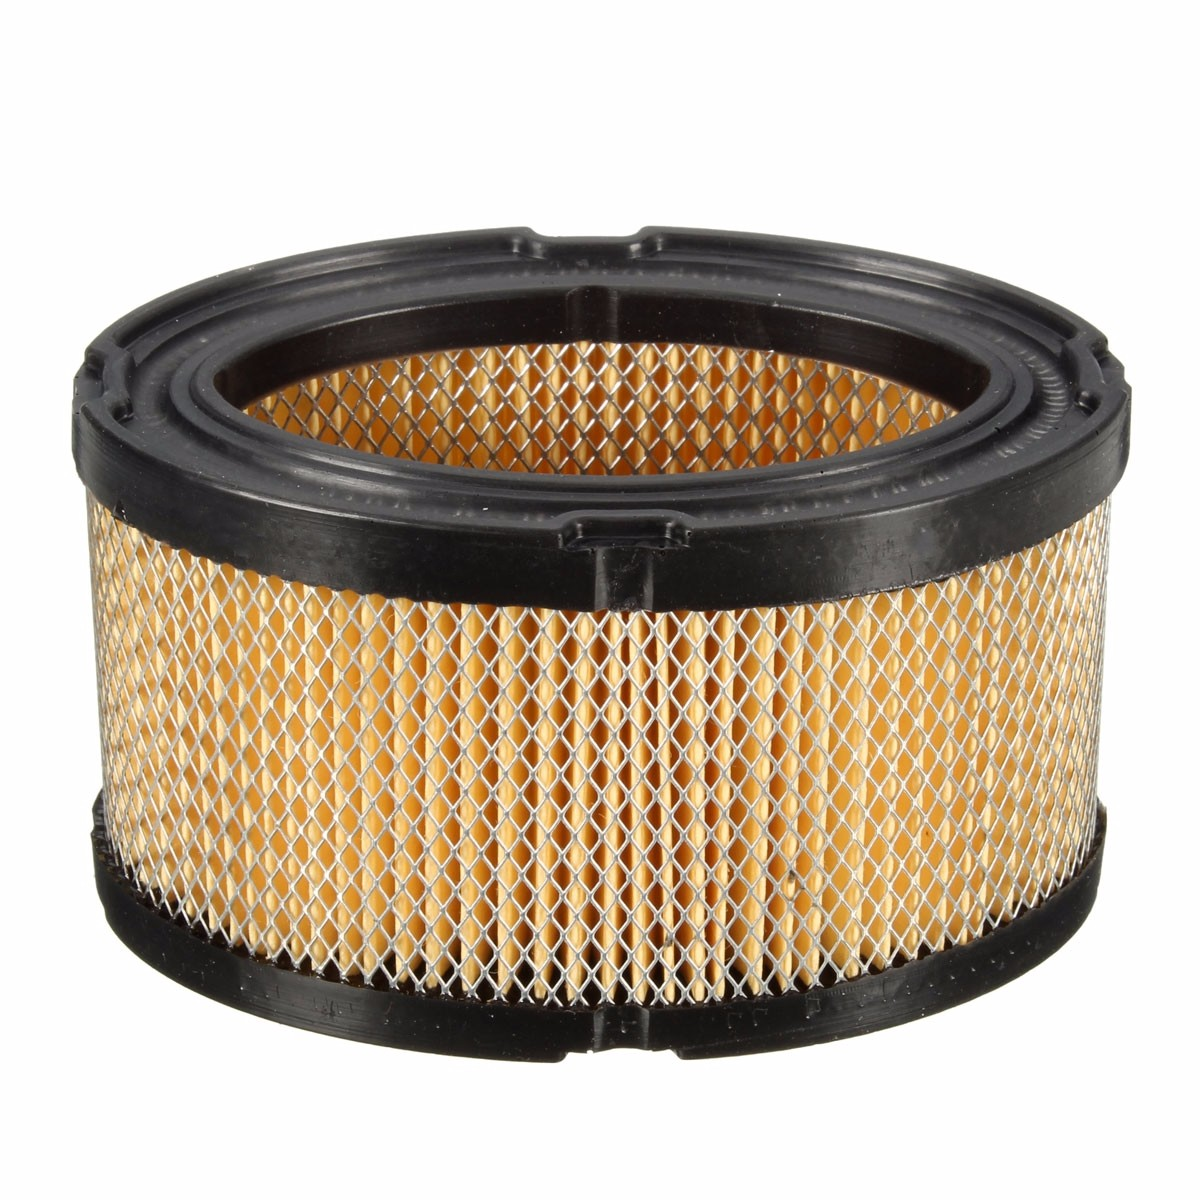 Air Filter For Tecumseh 33268 John Deere M49746